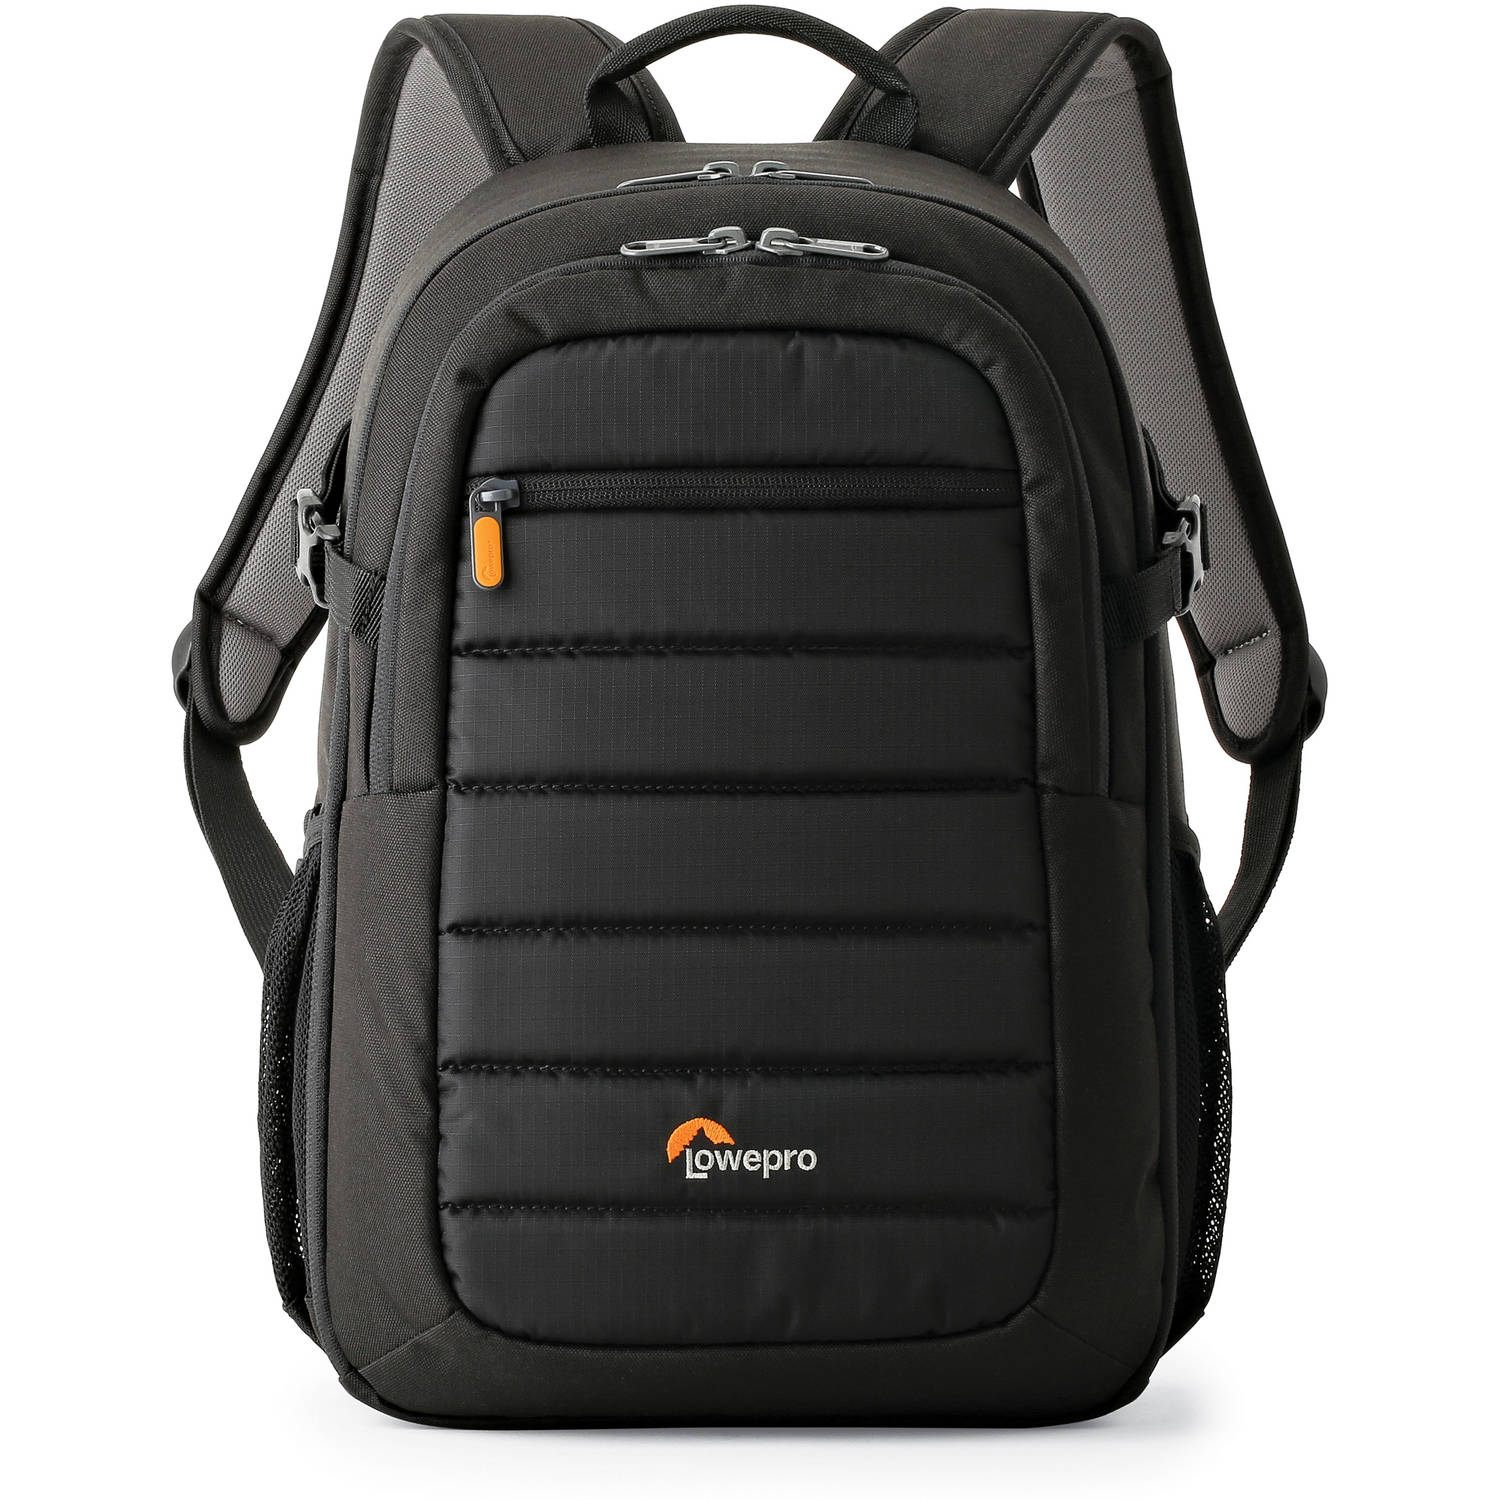 Lowepro Tahoe BP 150, Black by Lowepro